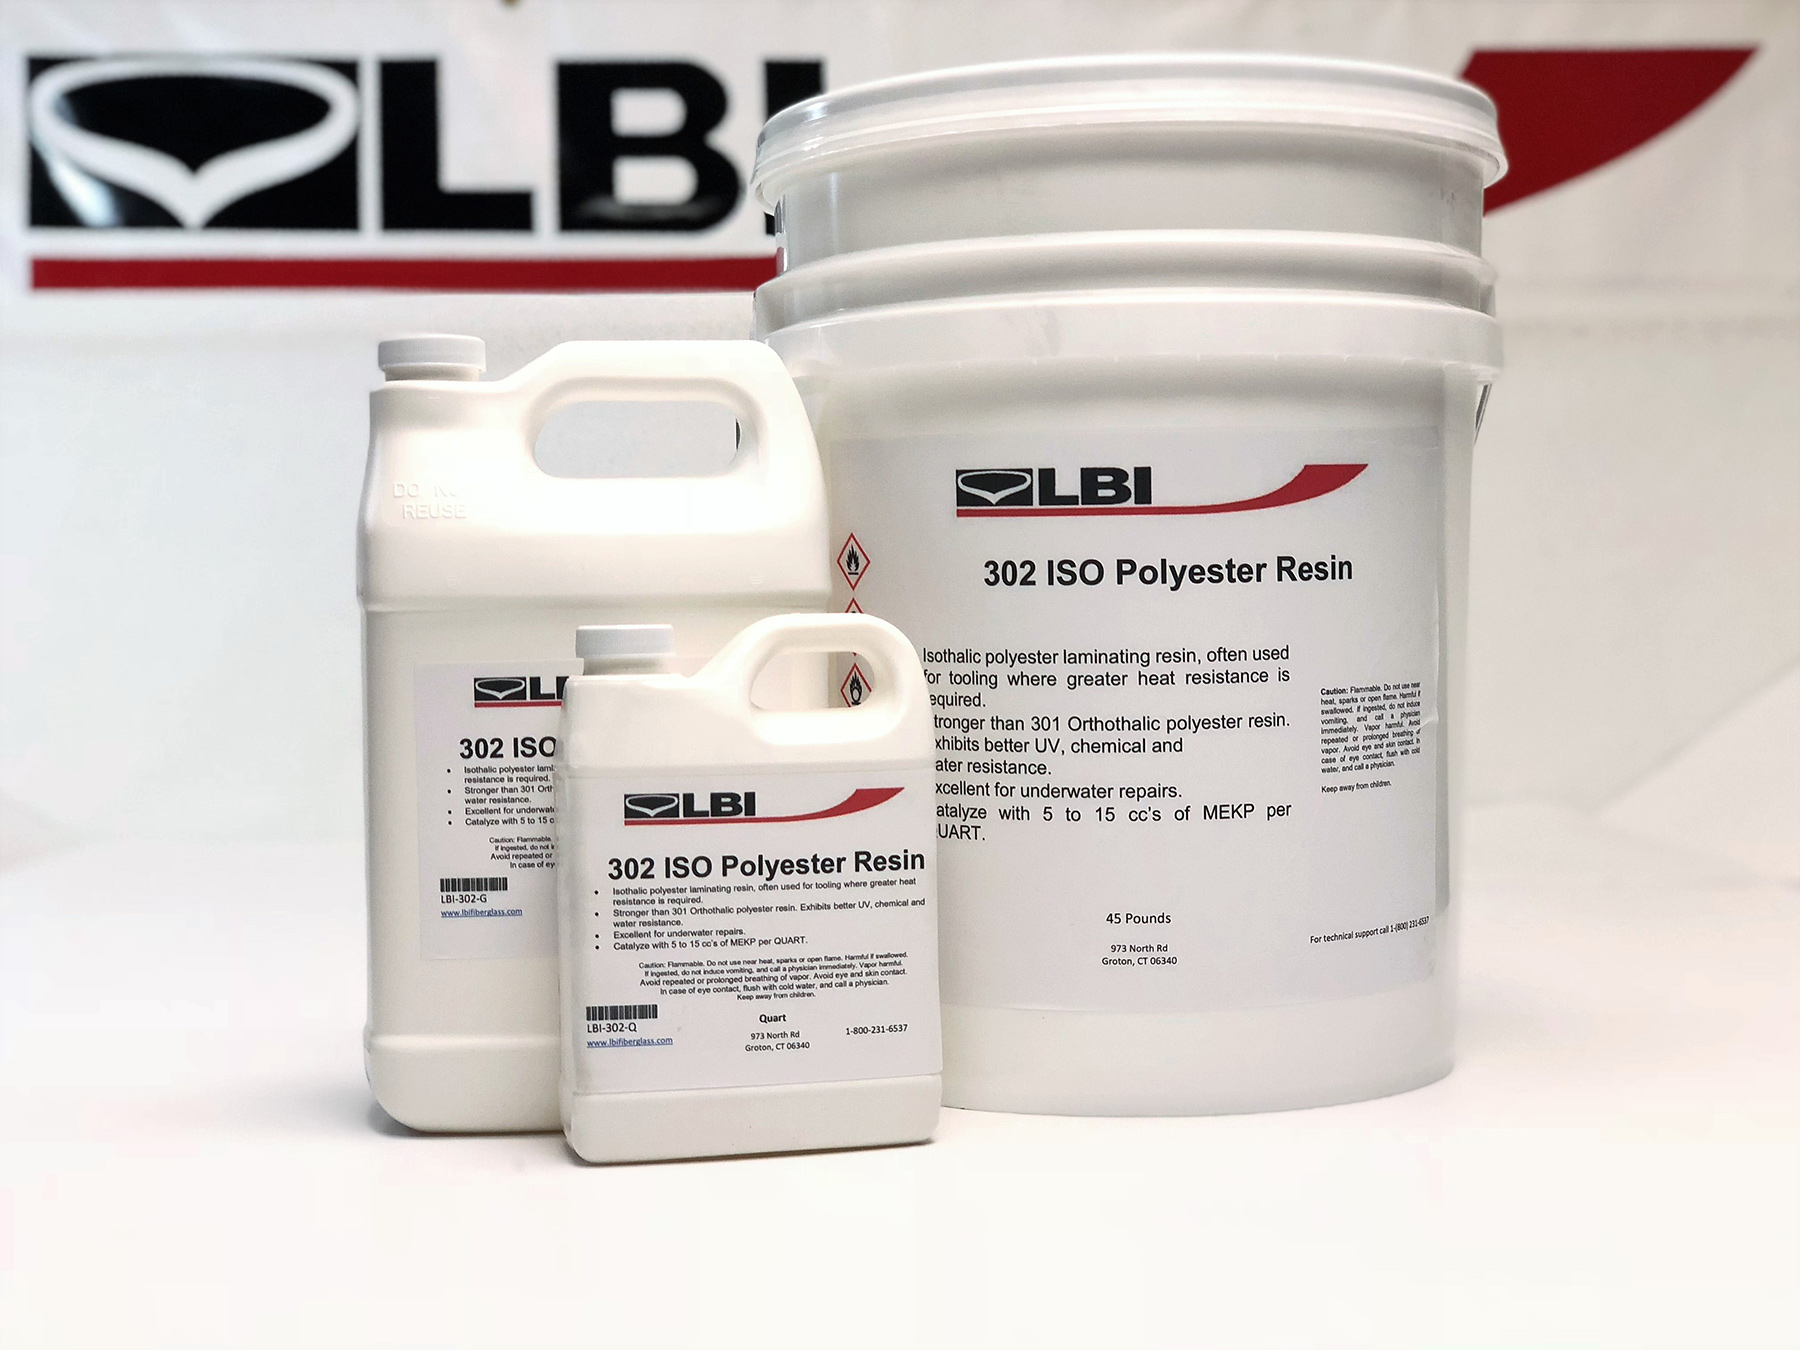 302 ISO Polyester Resin